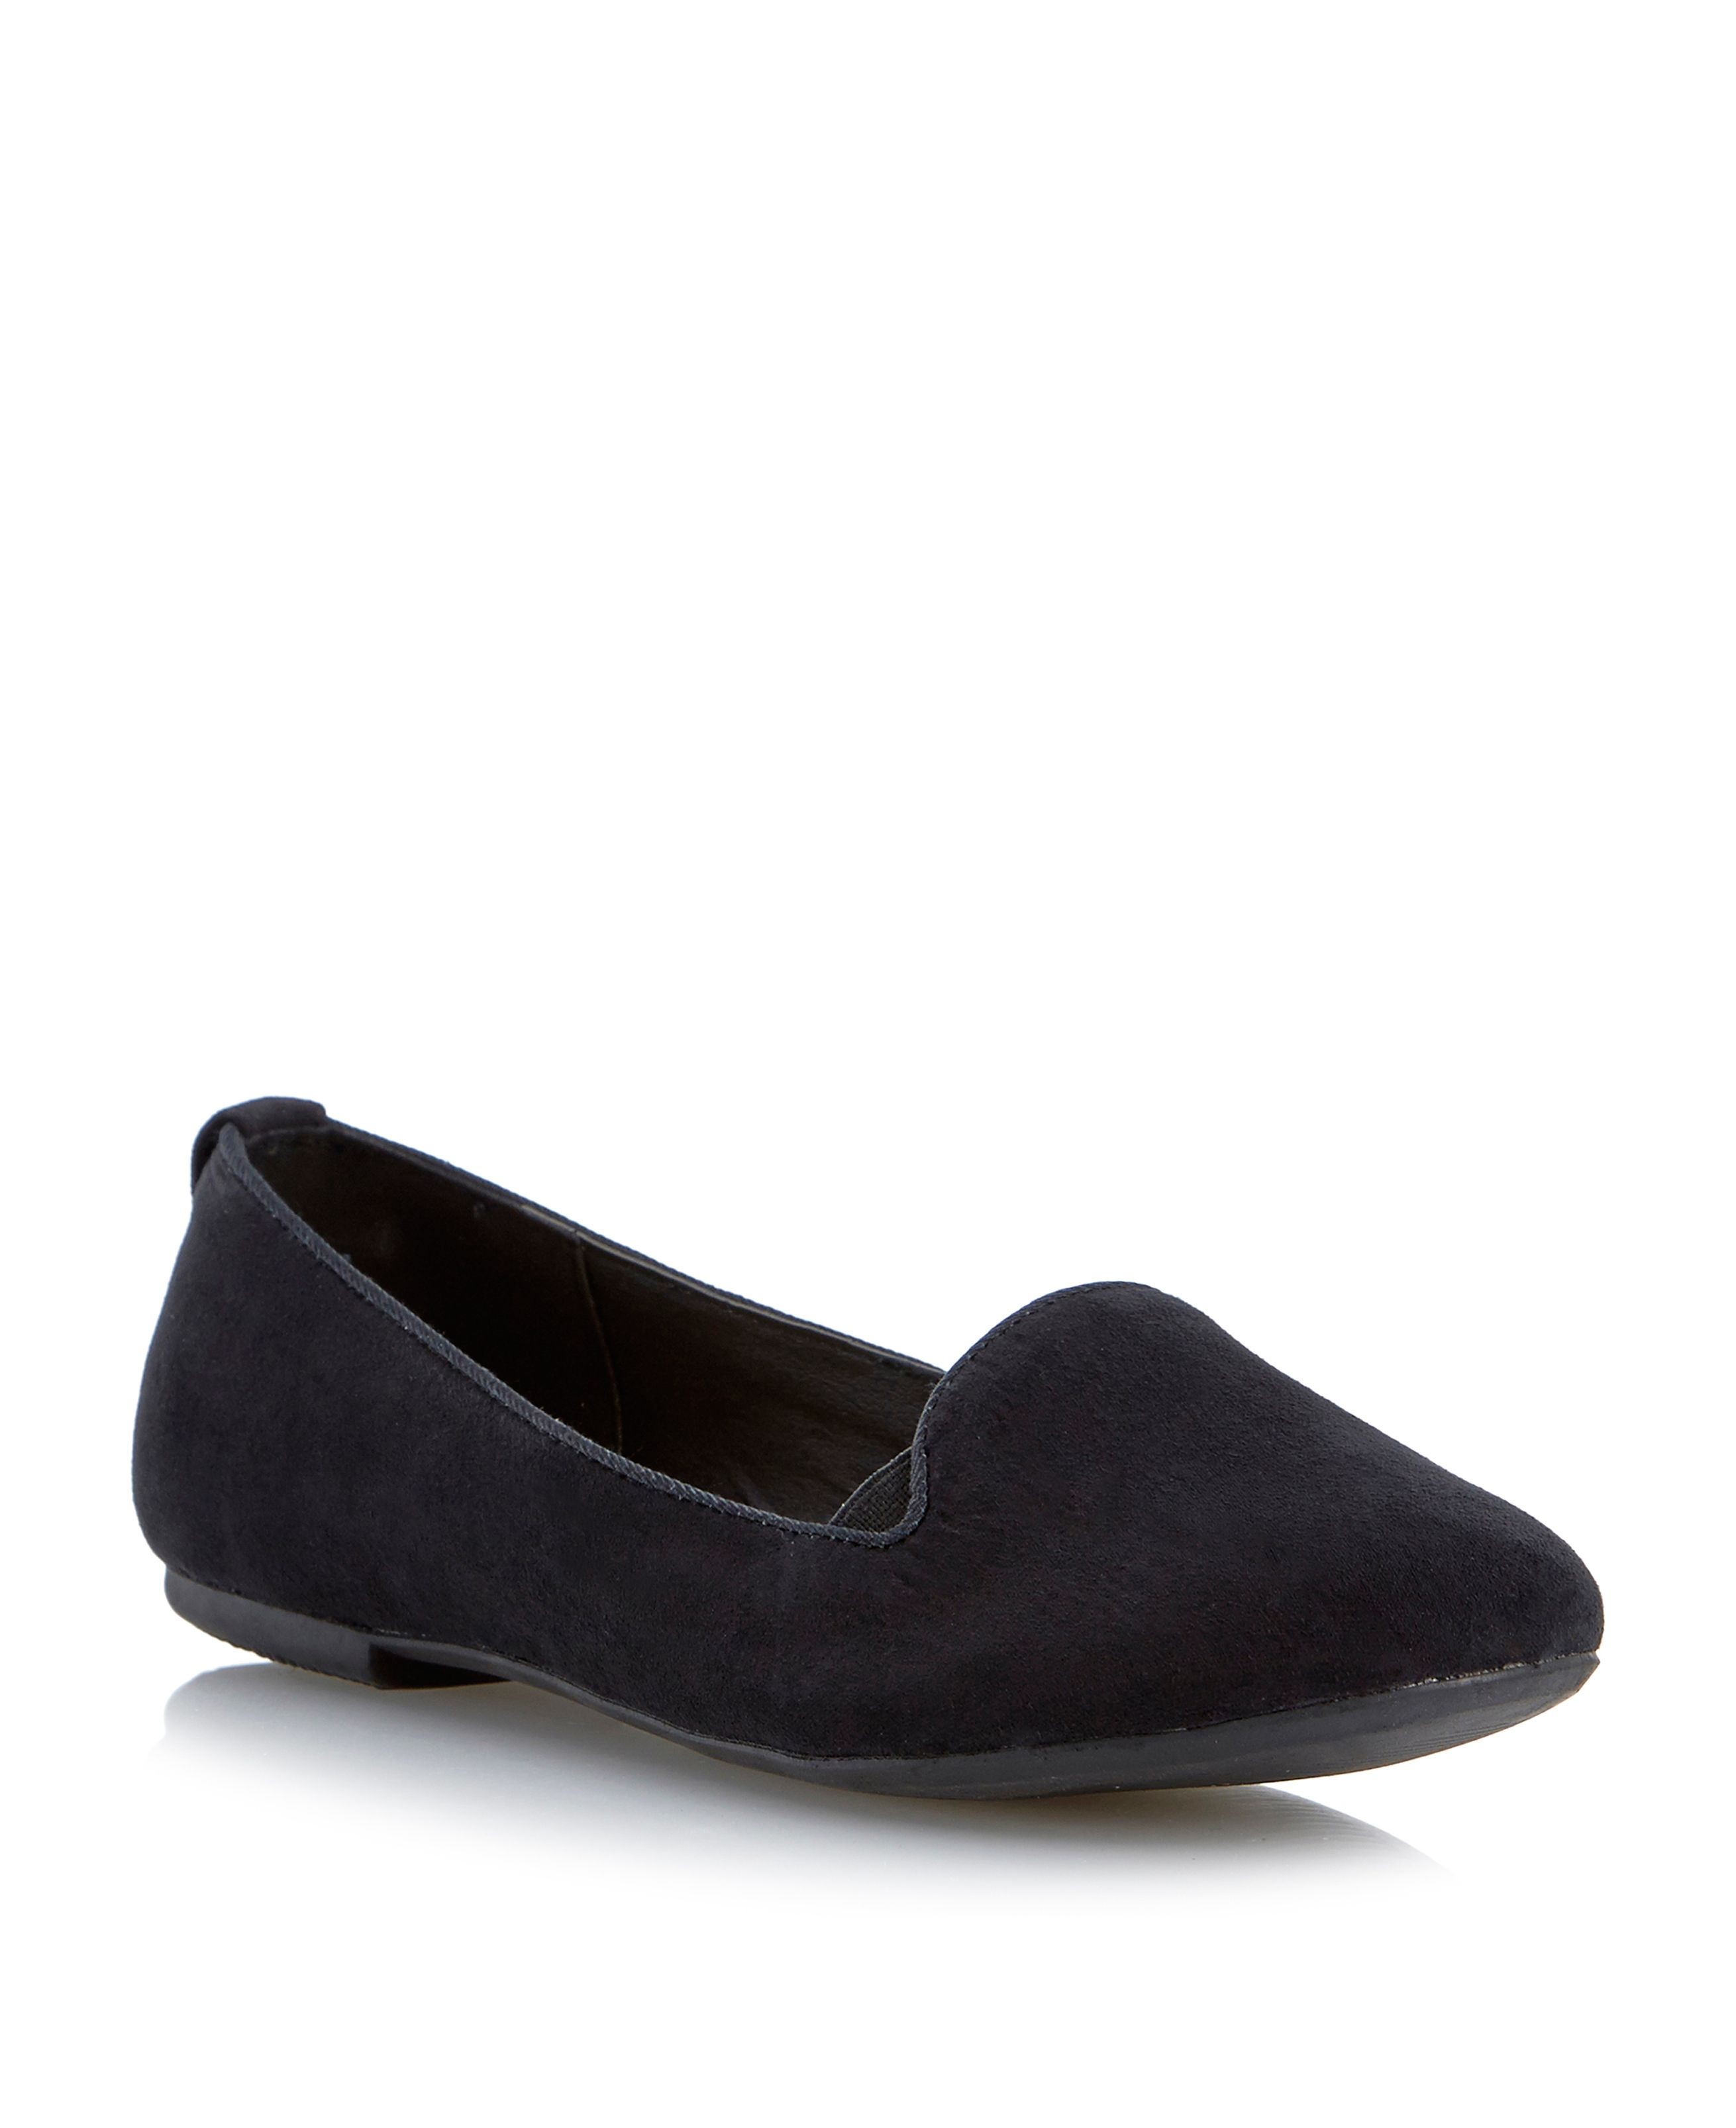 Myla slipper cut ballerina shoes